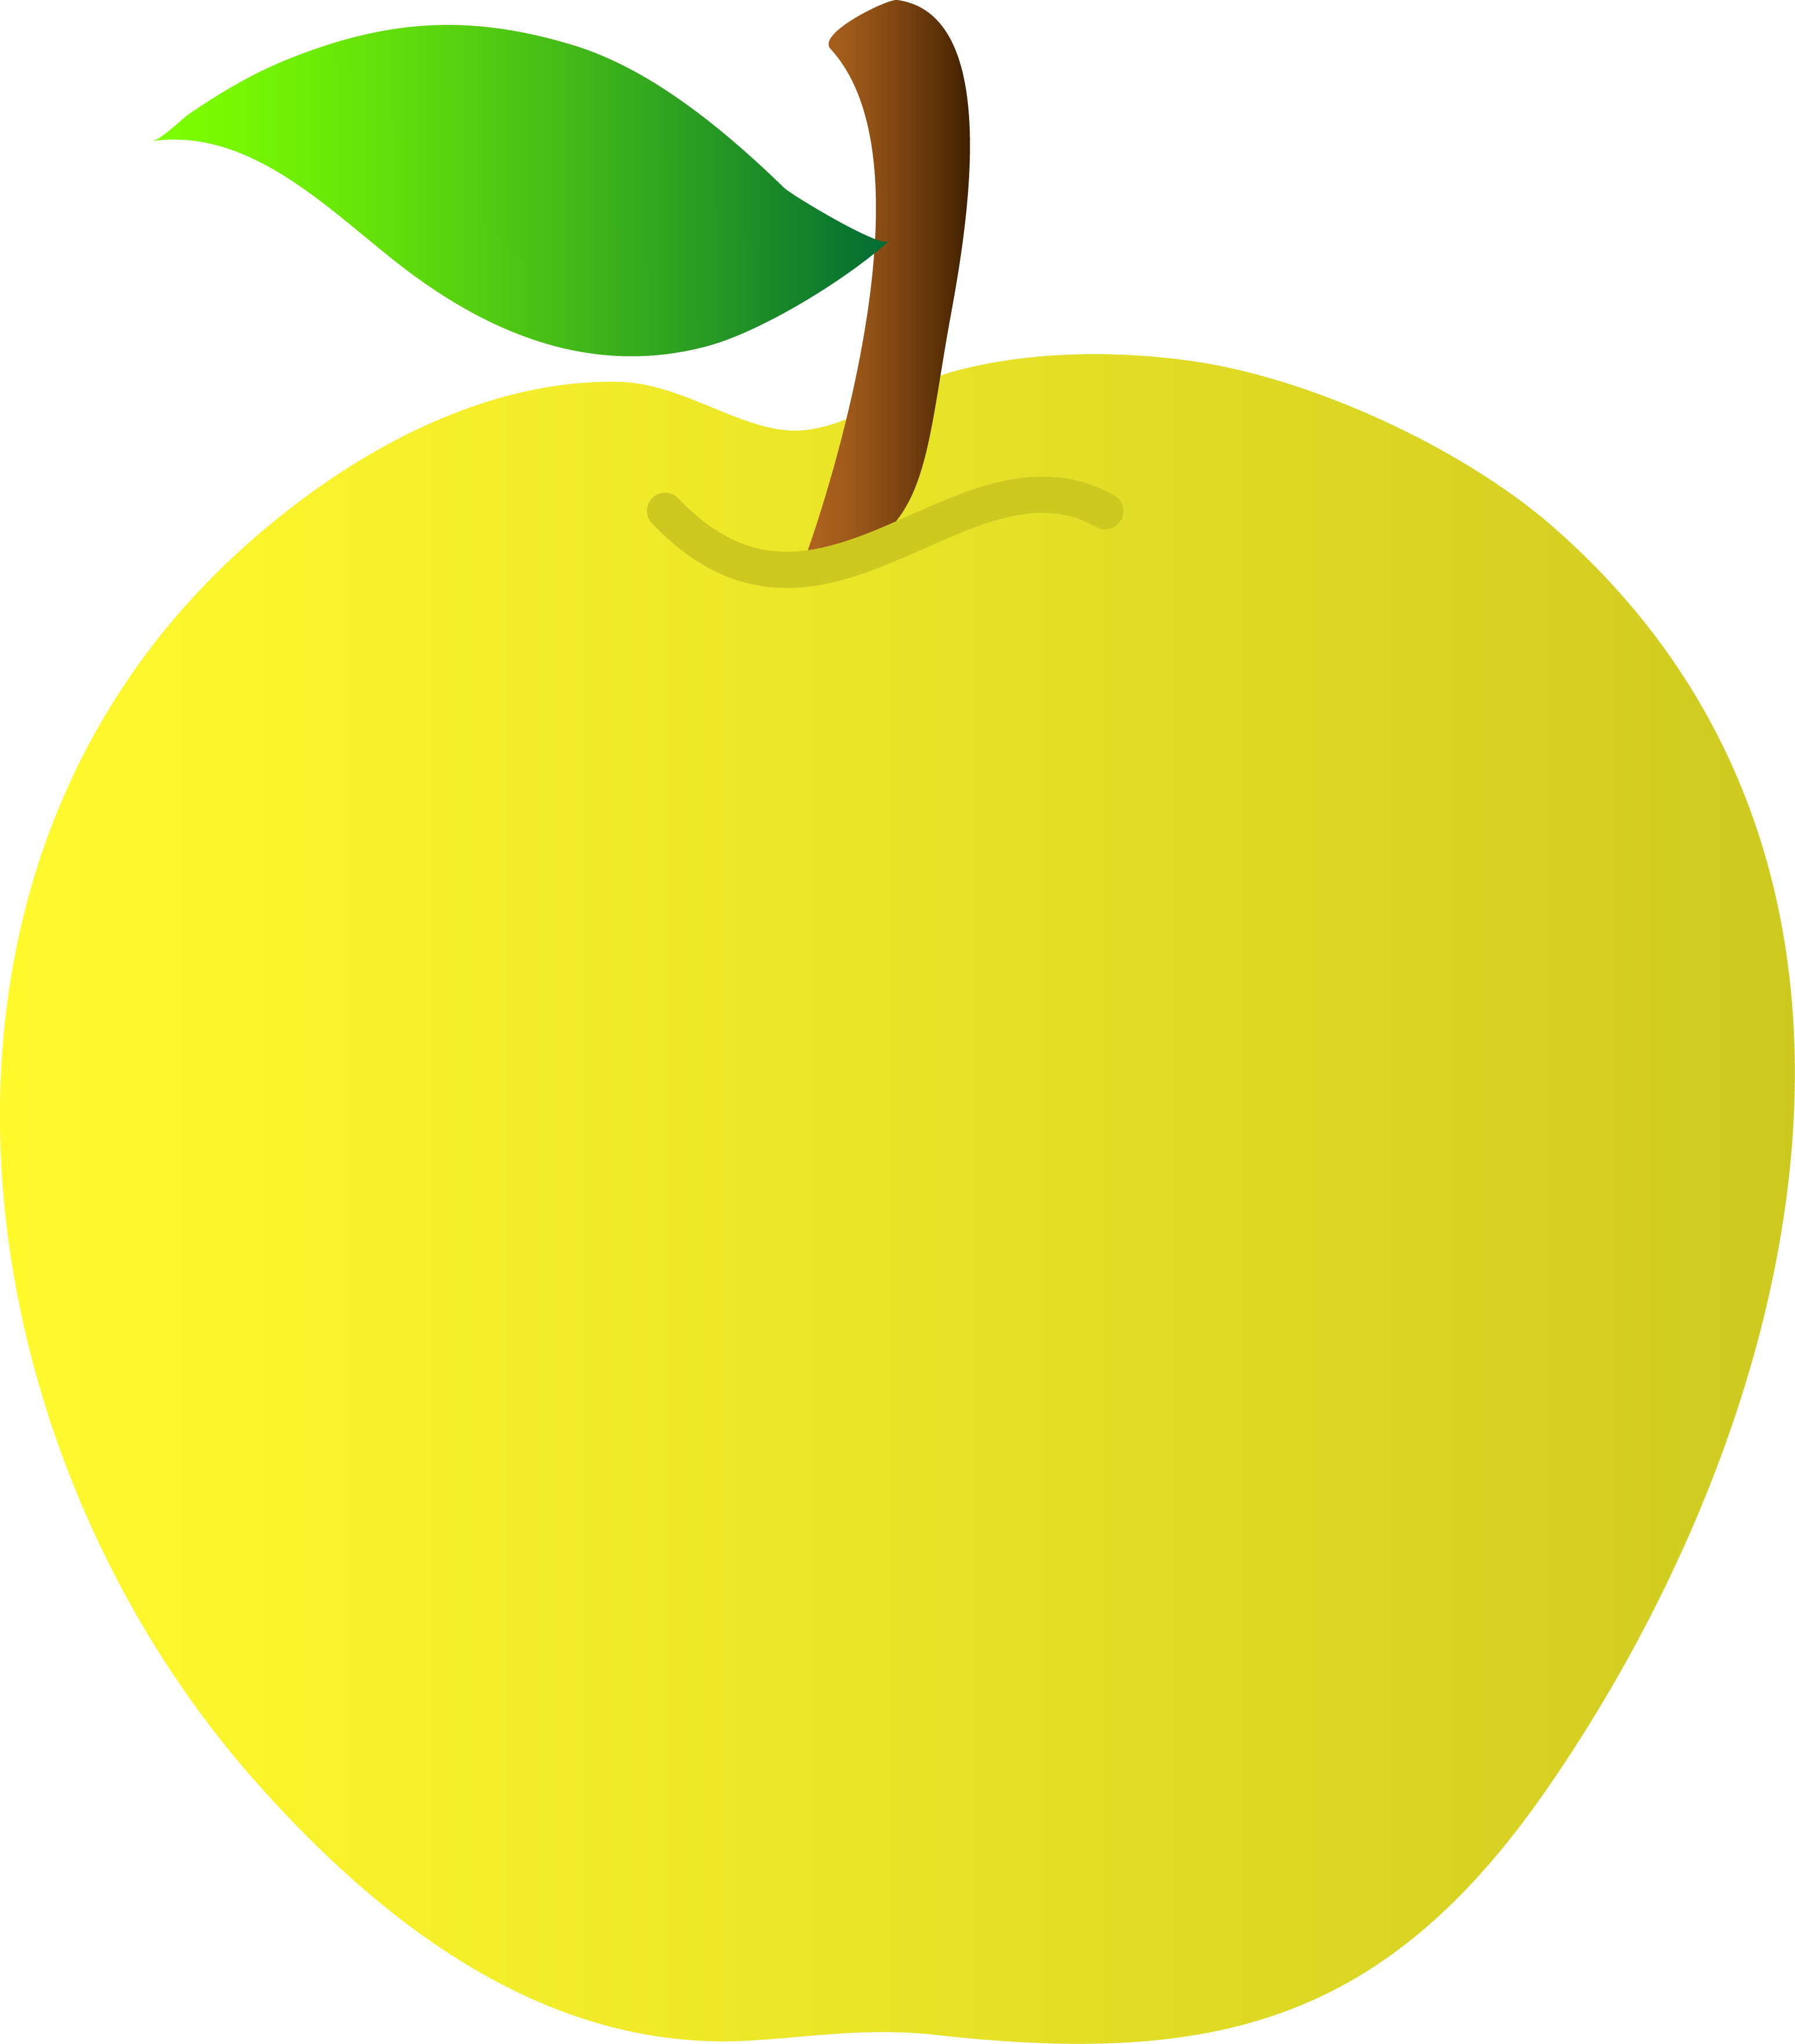 Transparent messenger clipart - Free Messenger Cliparts, Download Free Clip Art, Free - Yellow Apple Clipart Transparent Background